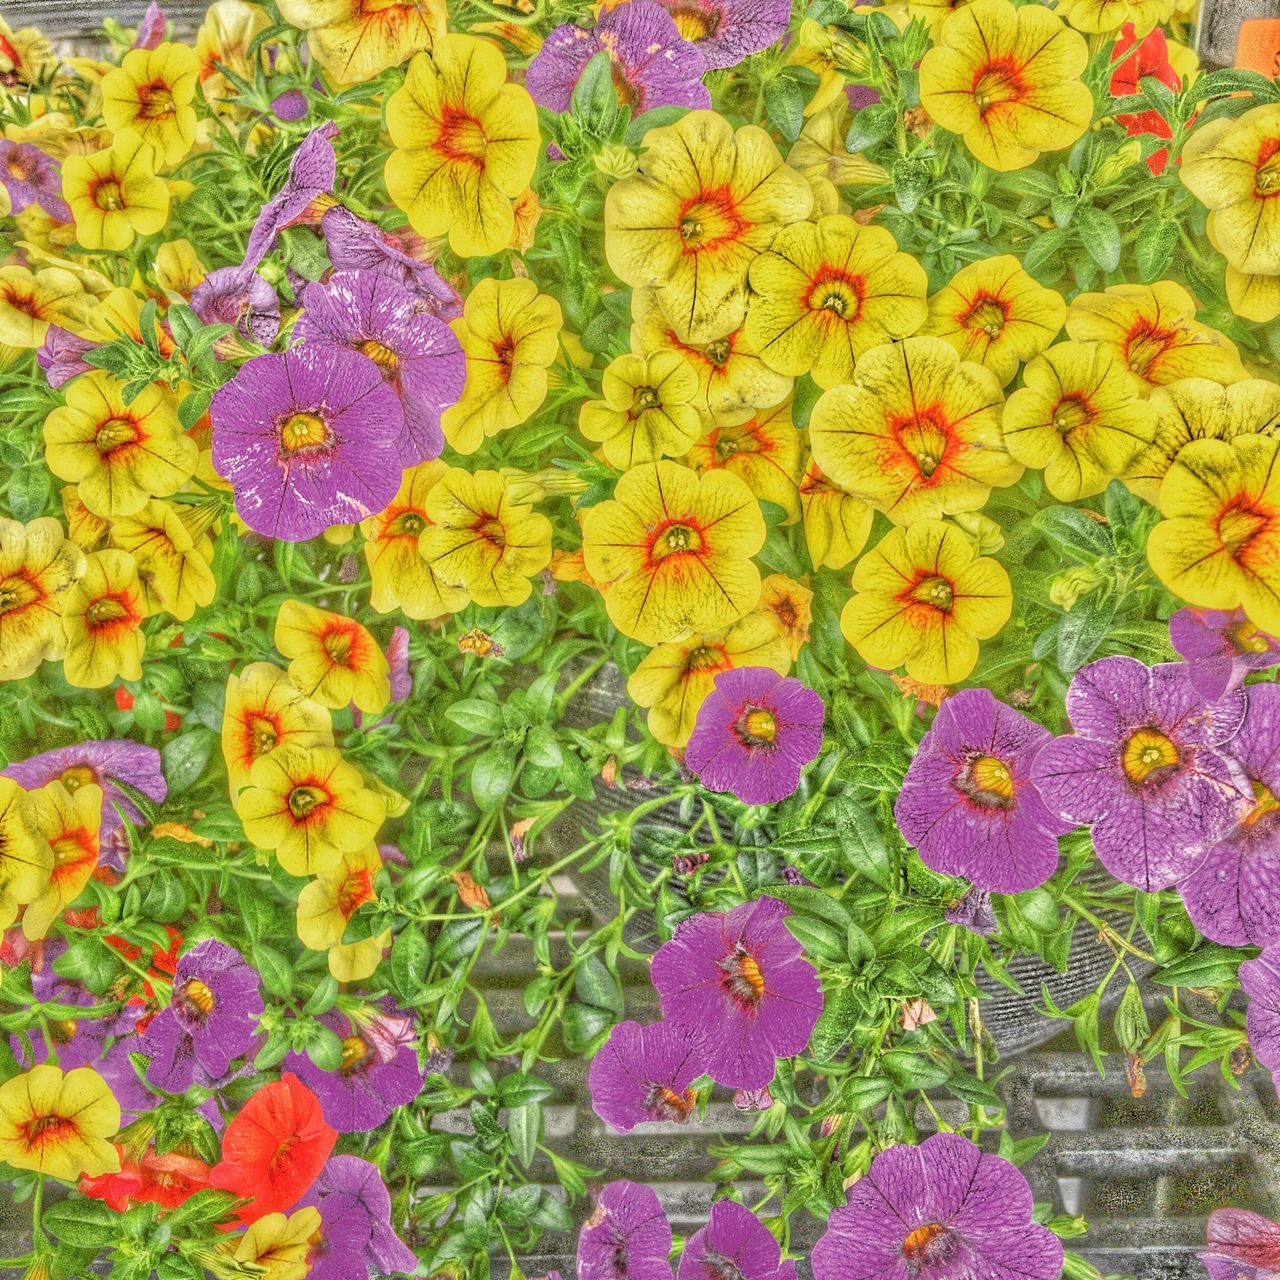 Flowers Camerafilters Check This Out Hello World Taking Photos Enjoying Life Iphonephotography Artistic Expression Color Photography Nature Spring Has Arrived Flowers, Nature And Beauty Spring Into Spring Relaxedand Happy Nature Perfect